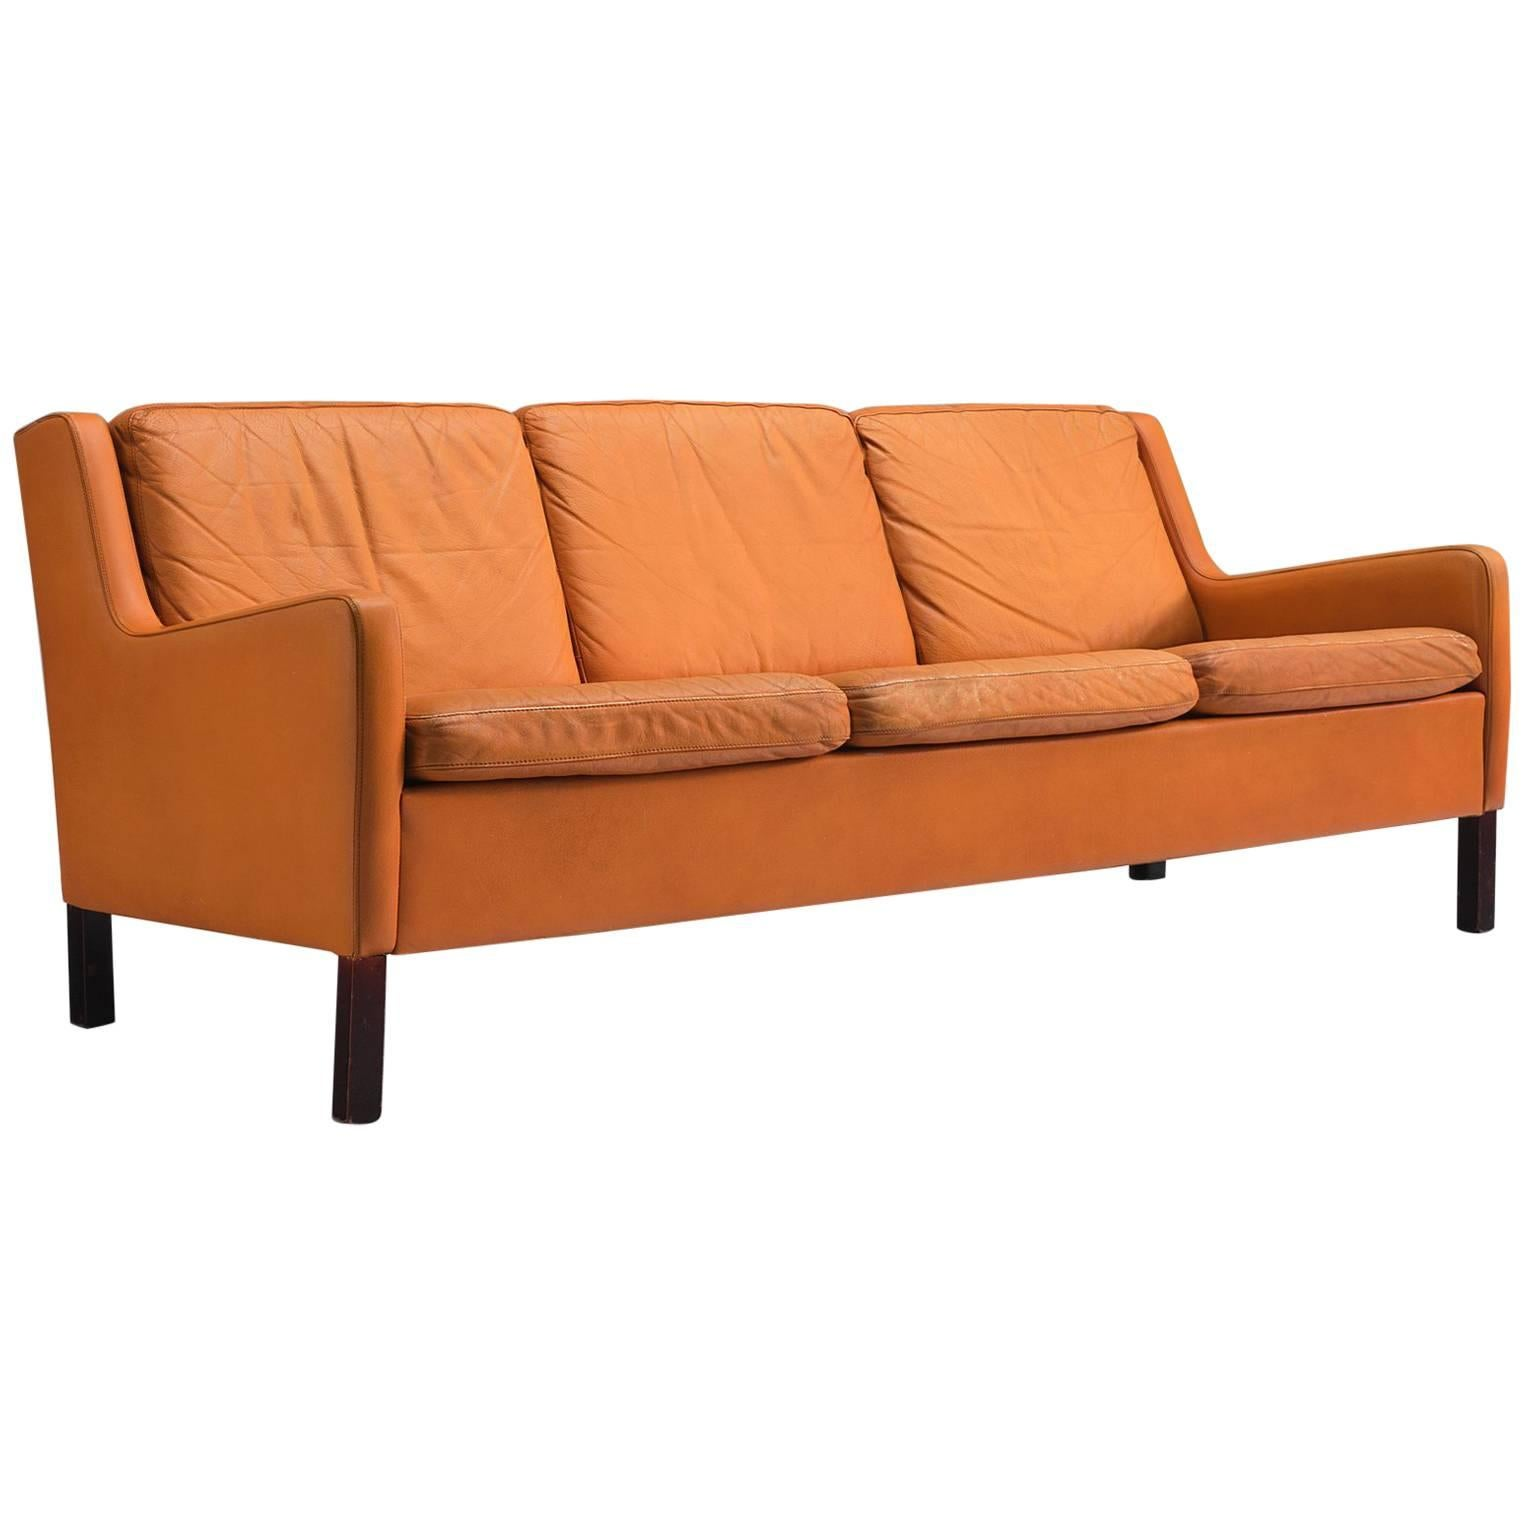 Danish Three Seat Cognac Leather Sofa